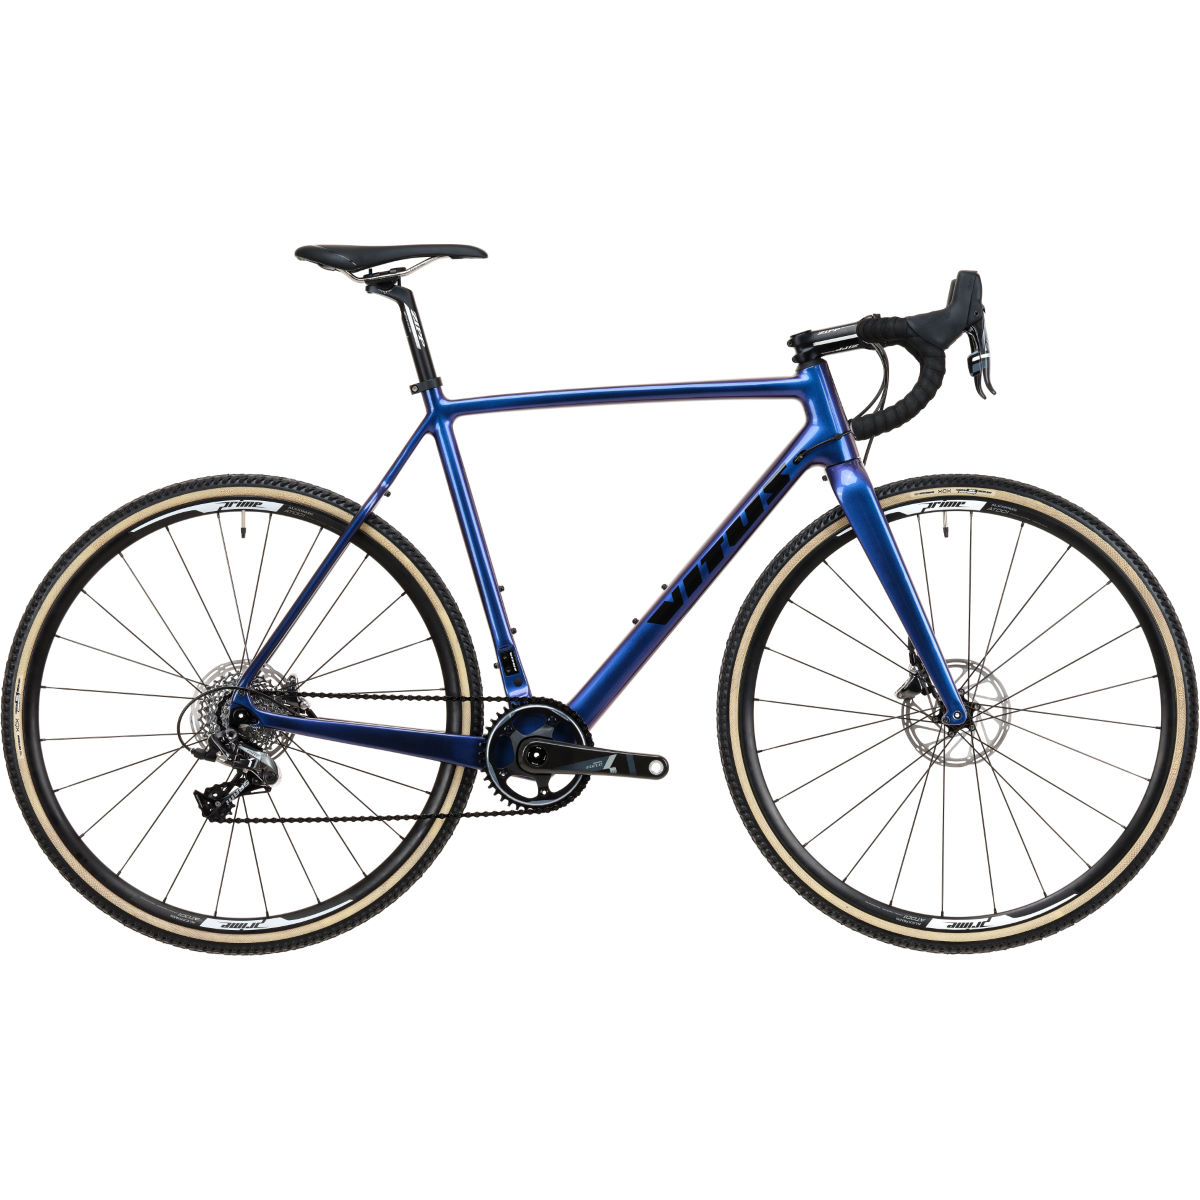 Image of Vélo de cyclo-cross Vitus Energie CRX (Force, 2020) - Small